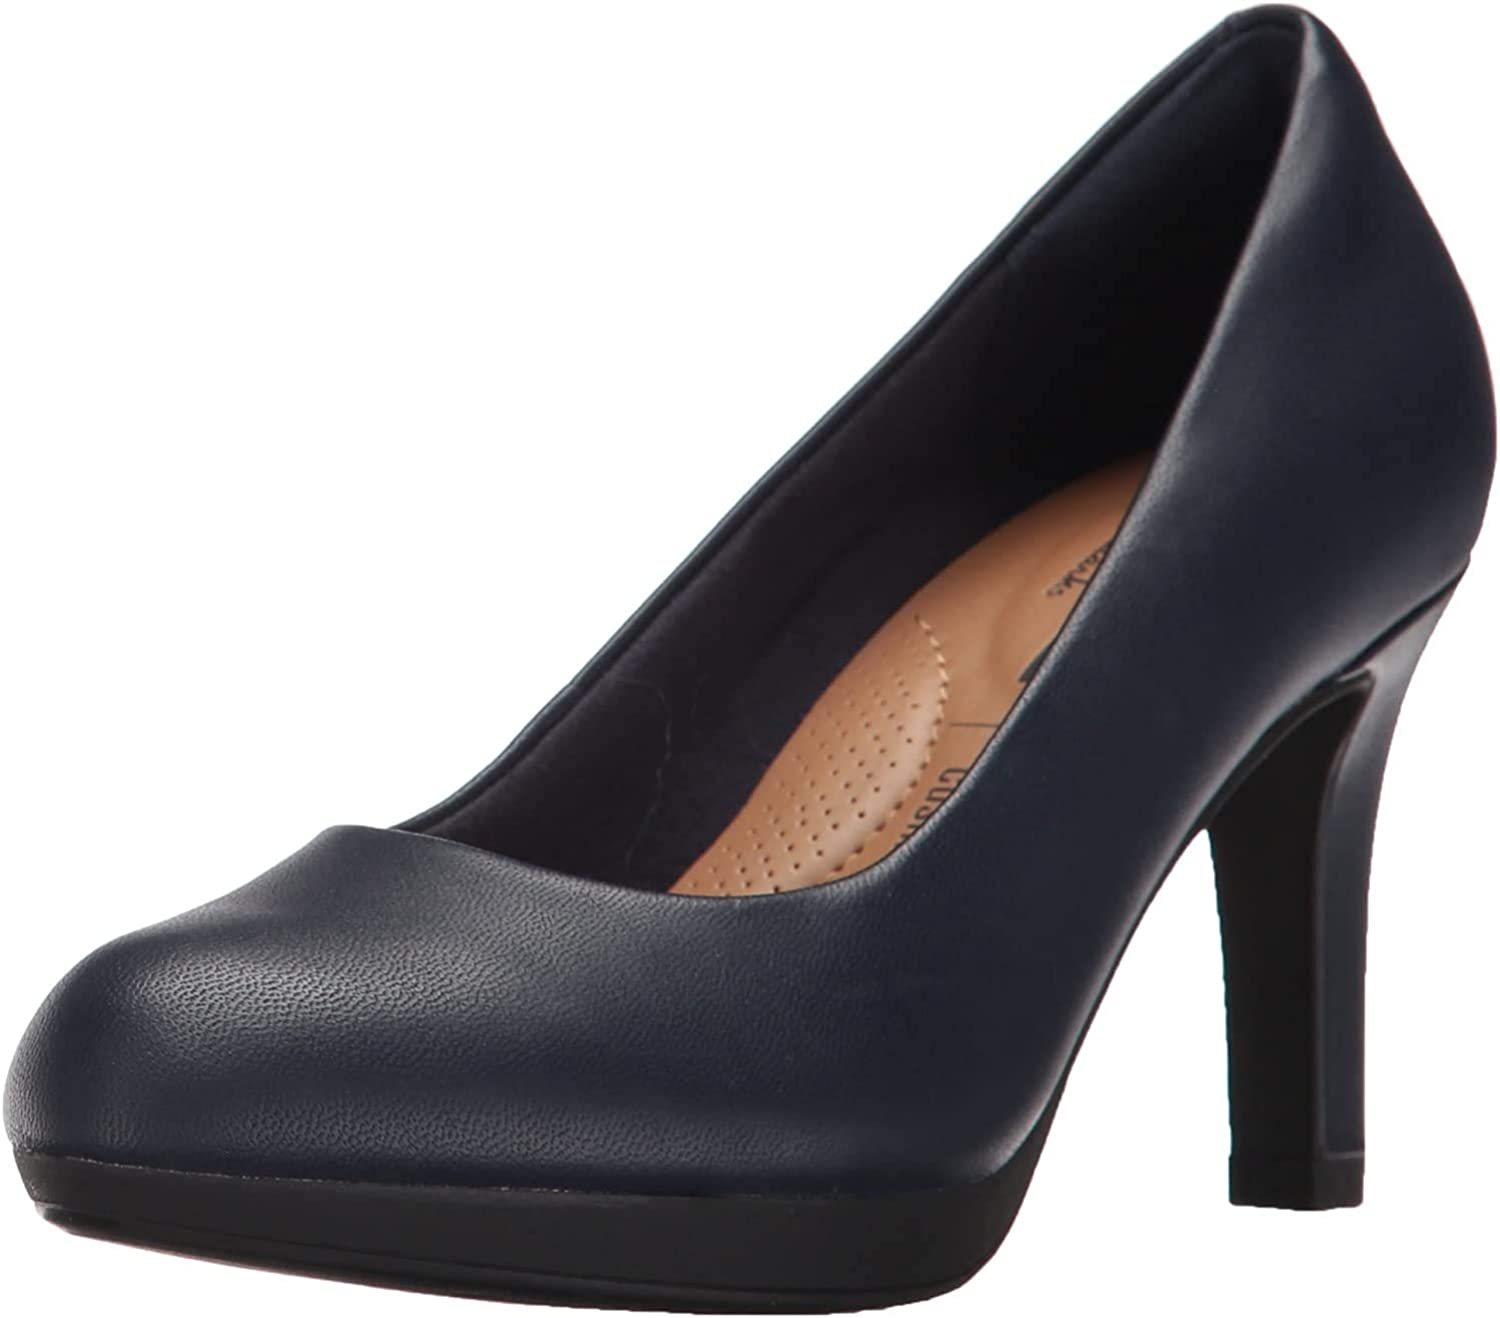 Clarks Women's Adriel Viola Dress Pump